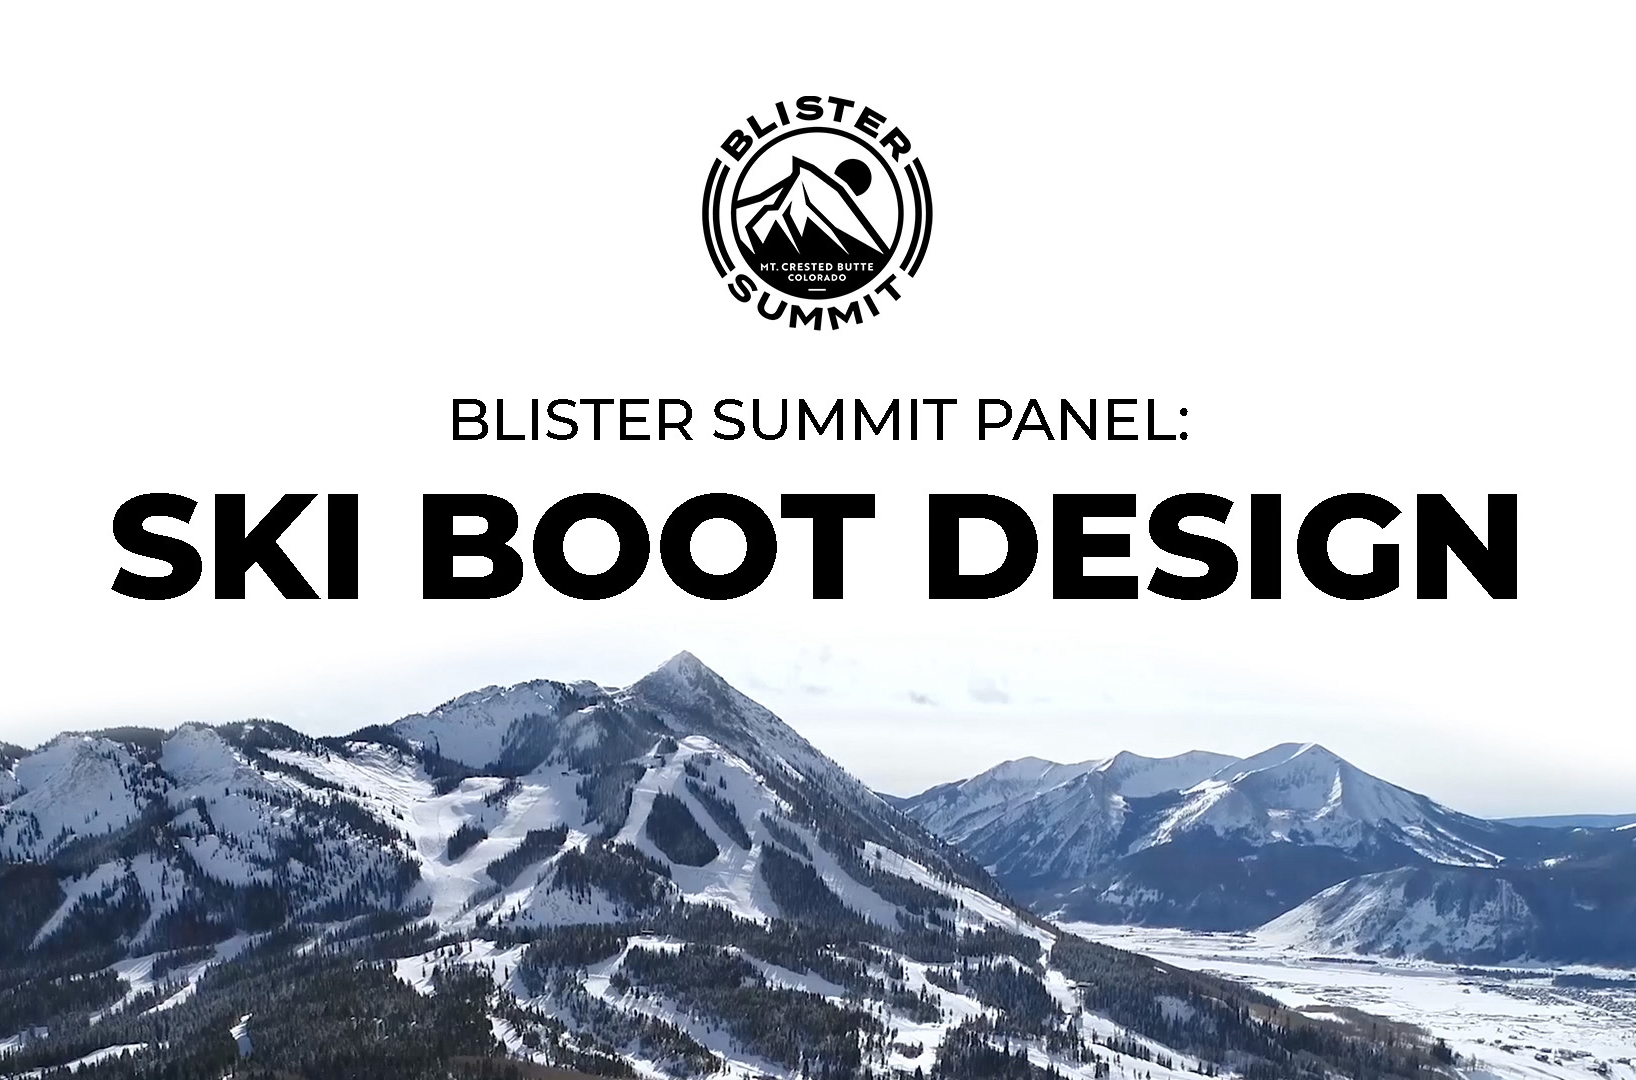 Blister Outdoor Gear review Crested Butte